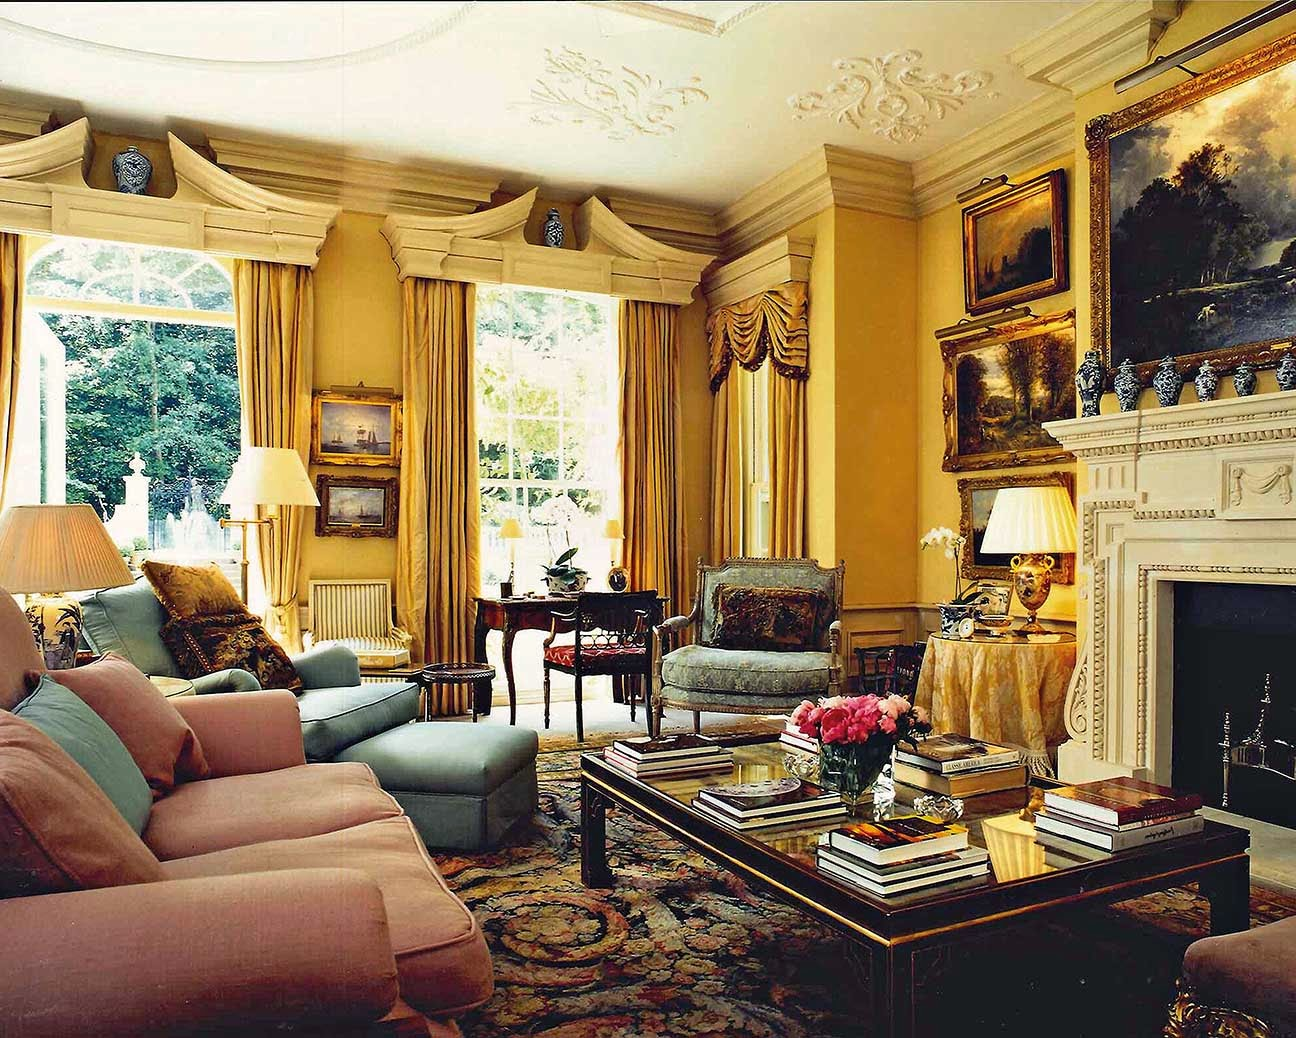 Nicky Haslam I Wrote About His Highly Entertaining Autobiography Redeeming Features Earlier Has Designed Interiors For An Ultra High Profile Clientele